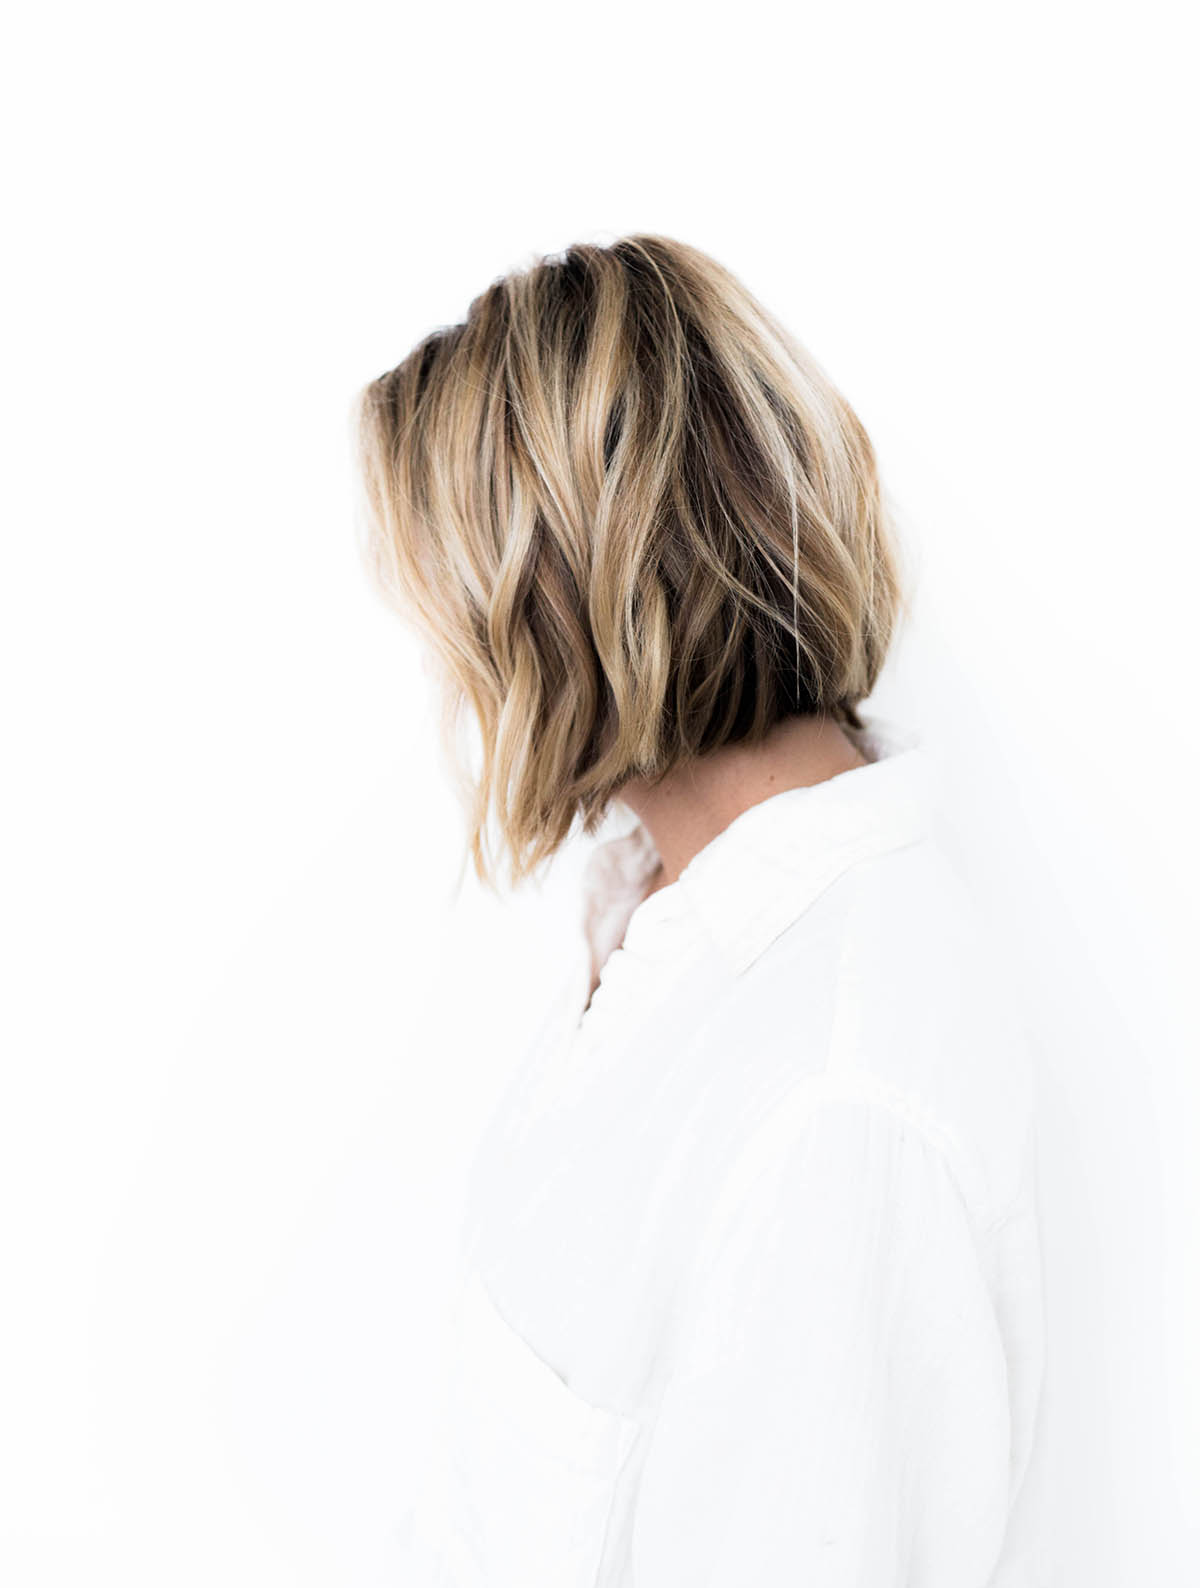 blunt bob haircut with cool sandy blonde highlights